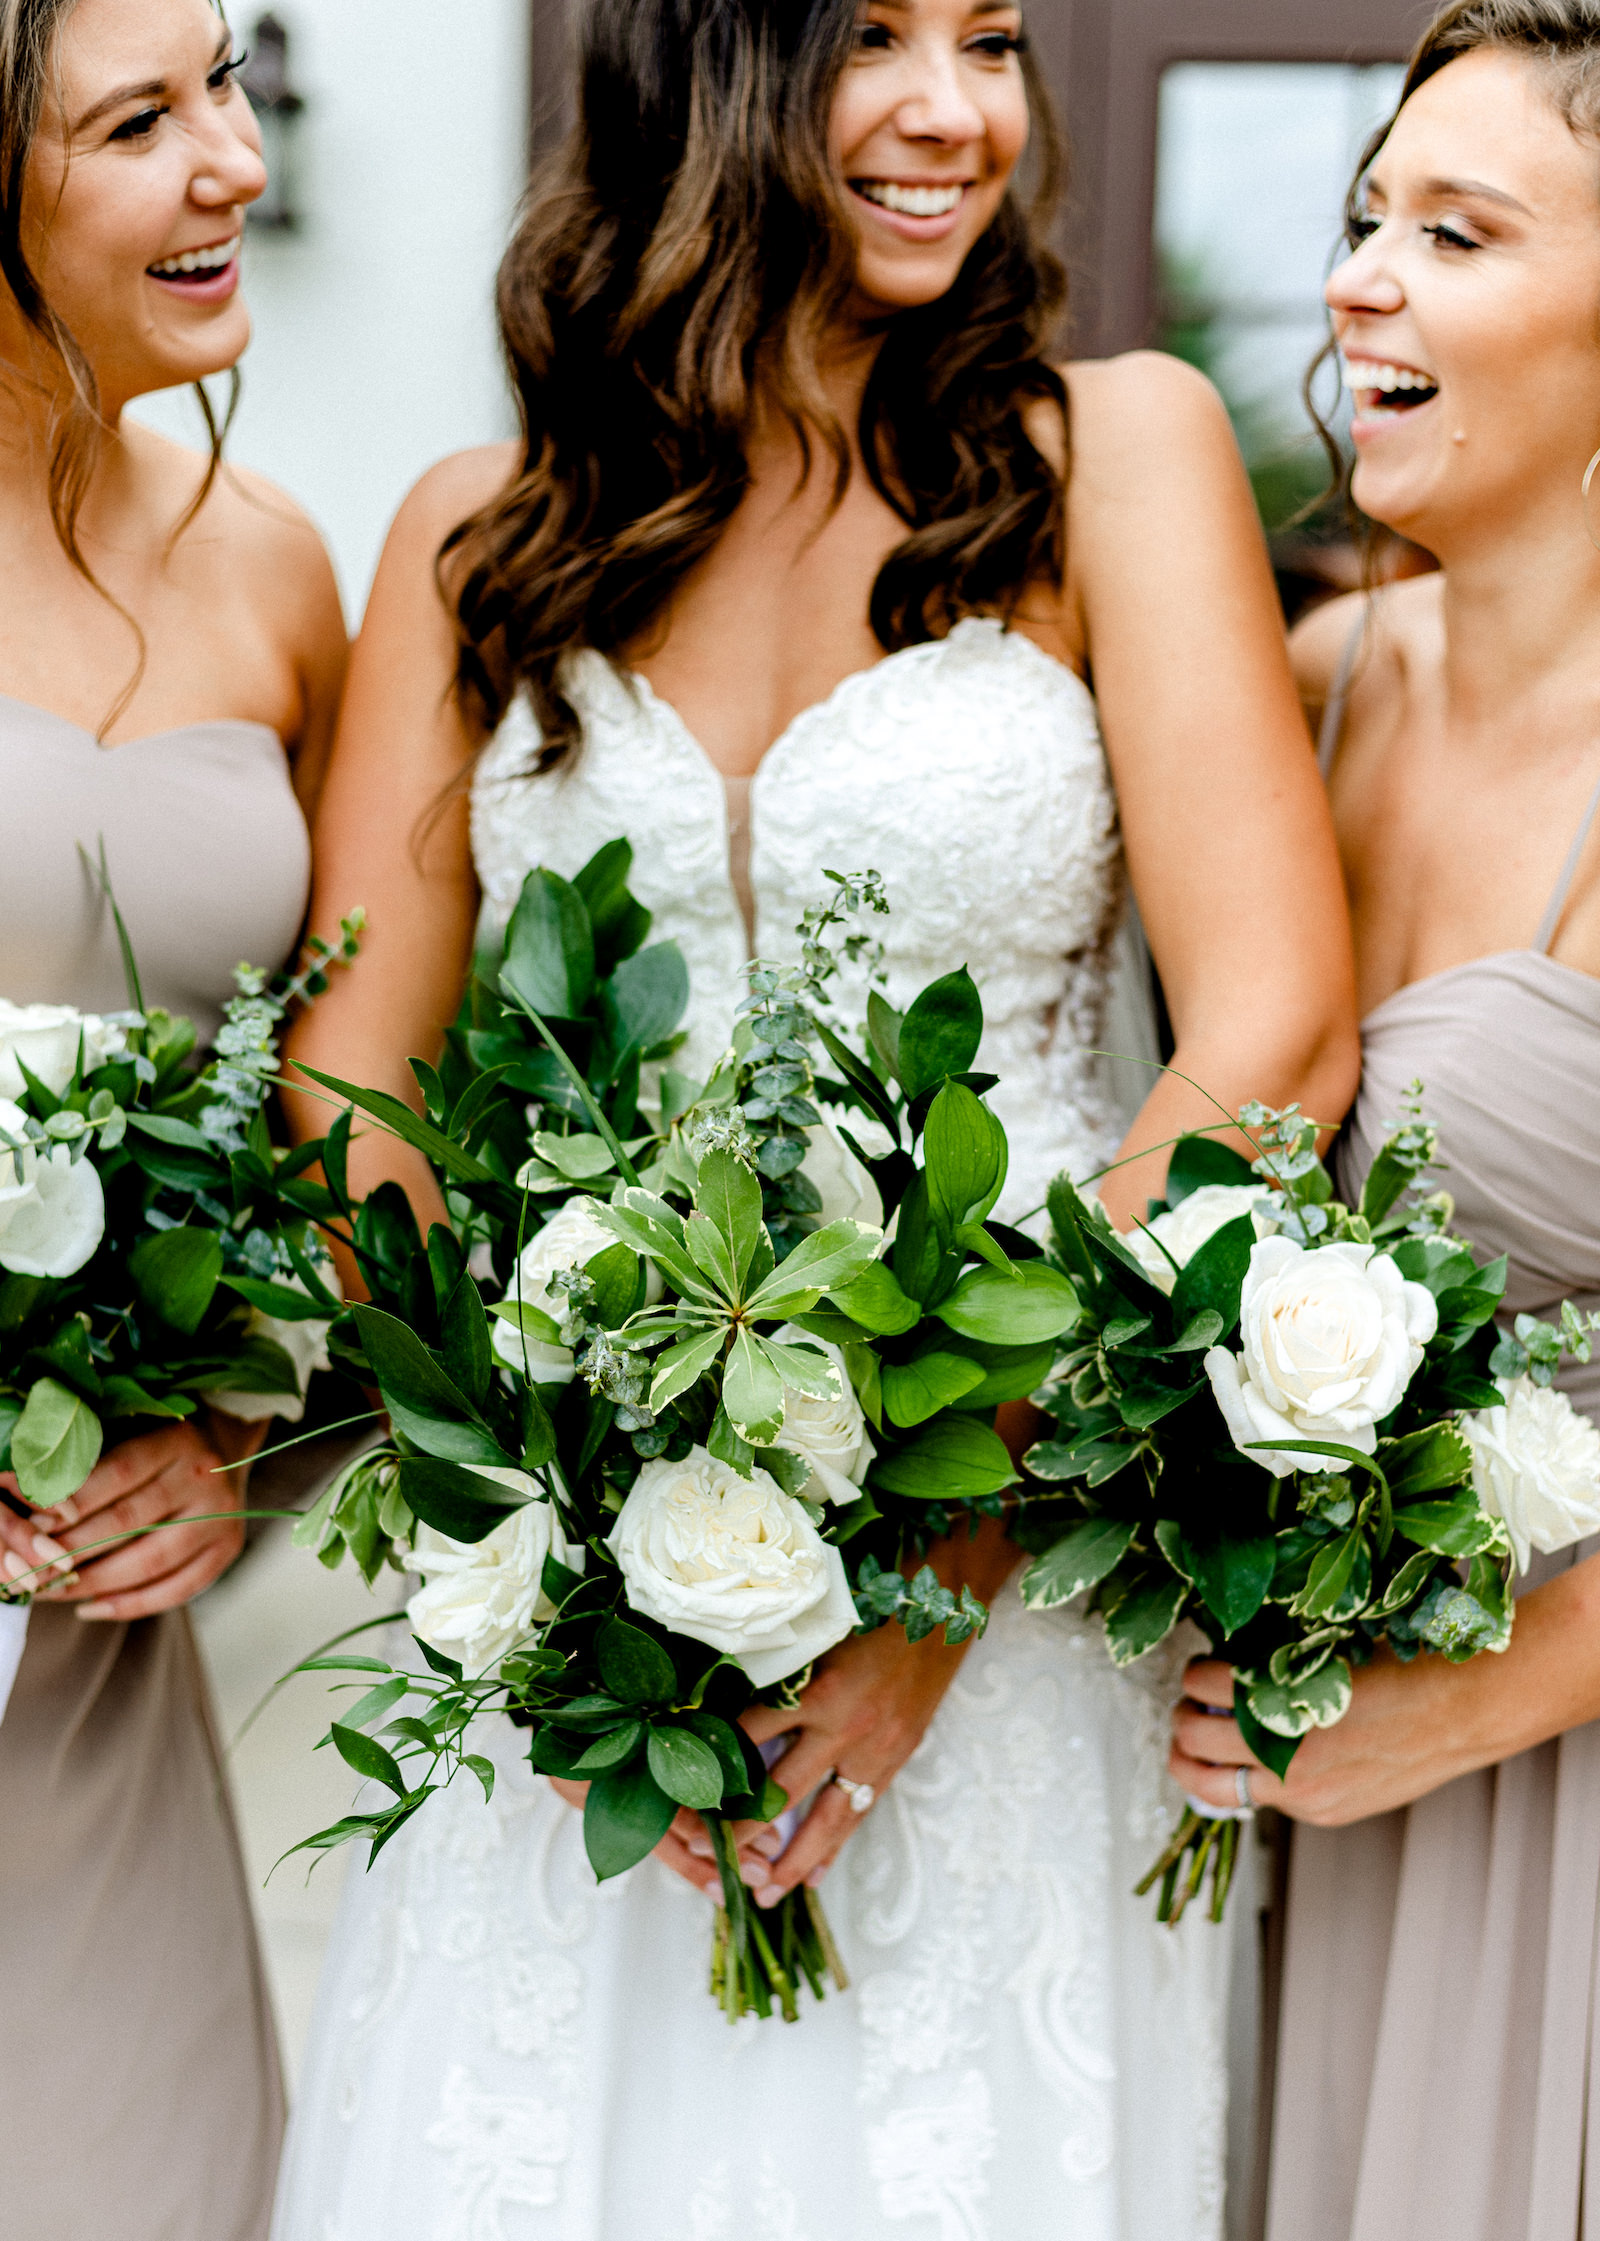 Bridal Party Outdoor Portrait | Lace Strapless Sweetheart Scalloped Edge Train Wedding Dress Bridal Gown | Bridesmaid Bouquets with Greenery and white Roses | Long Chiffon Taupe Champagne Neutral Bridesmaid Dresses by Lulu's | Dewitt for Love Photography